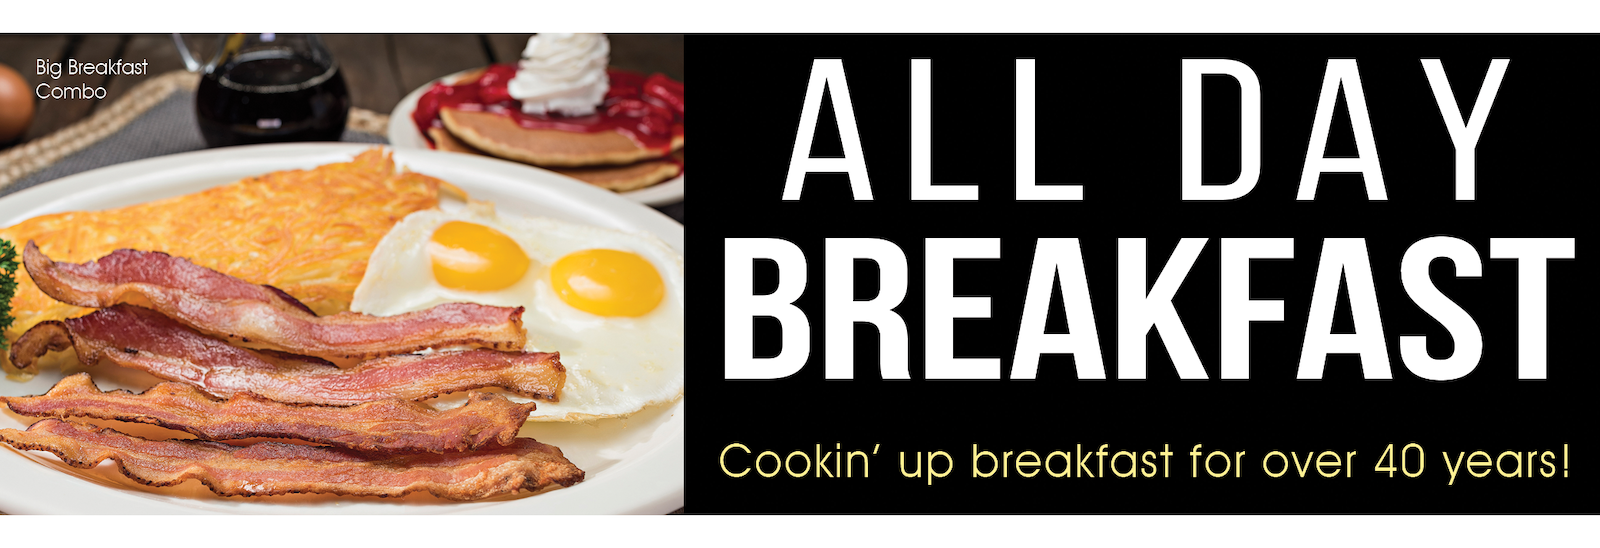 all day breakfast. banner. cooking up breakfast for over 40 years